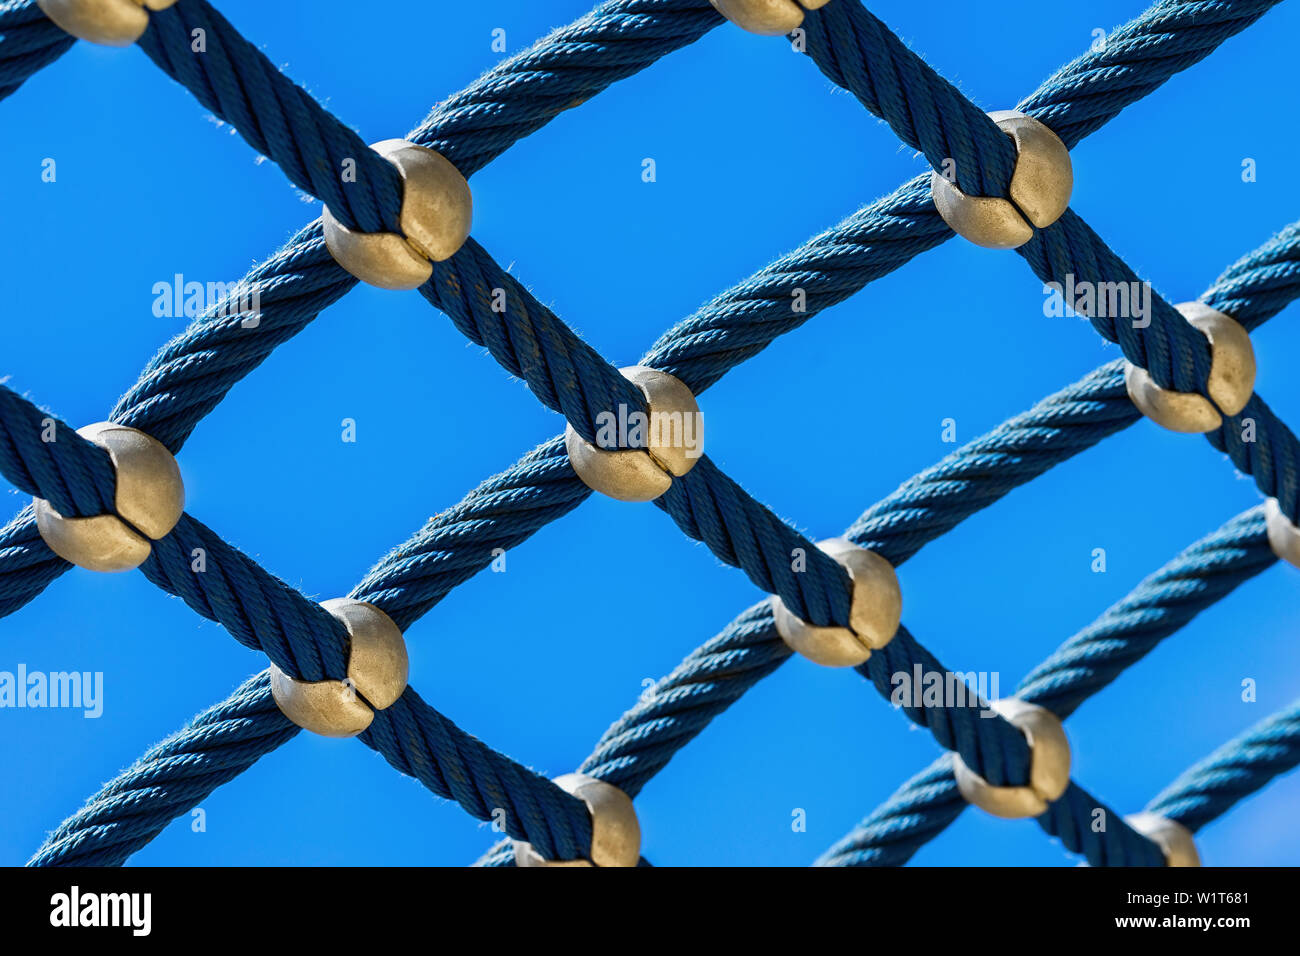 Rope mesh against a bright blue sky closeup, climbing park, playground for play and sport Stock Photo